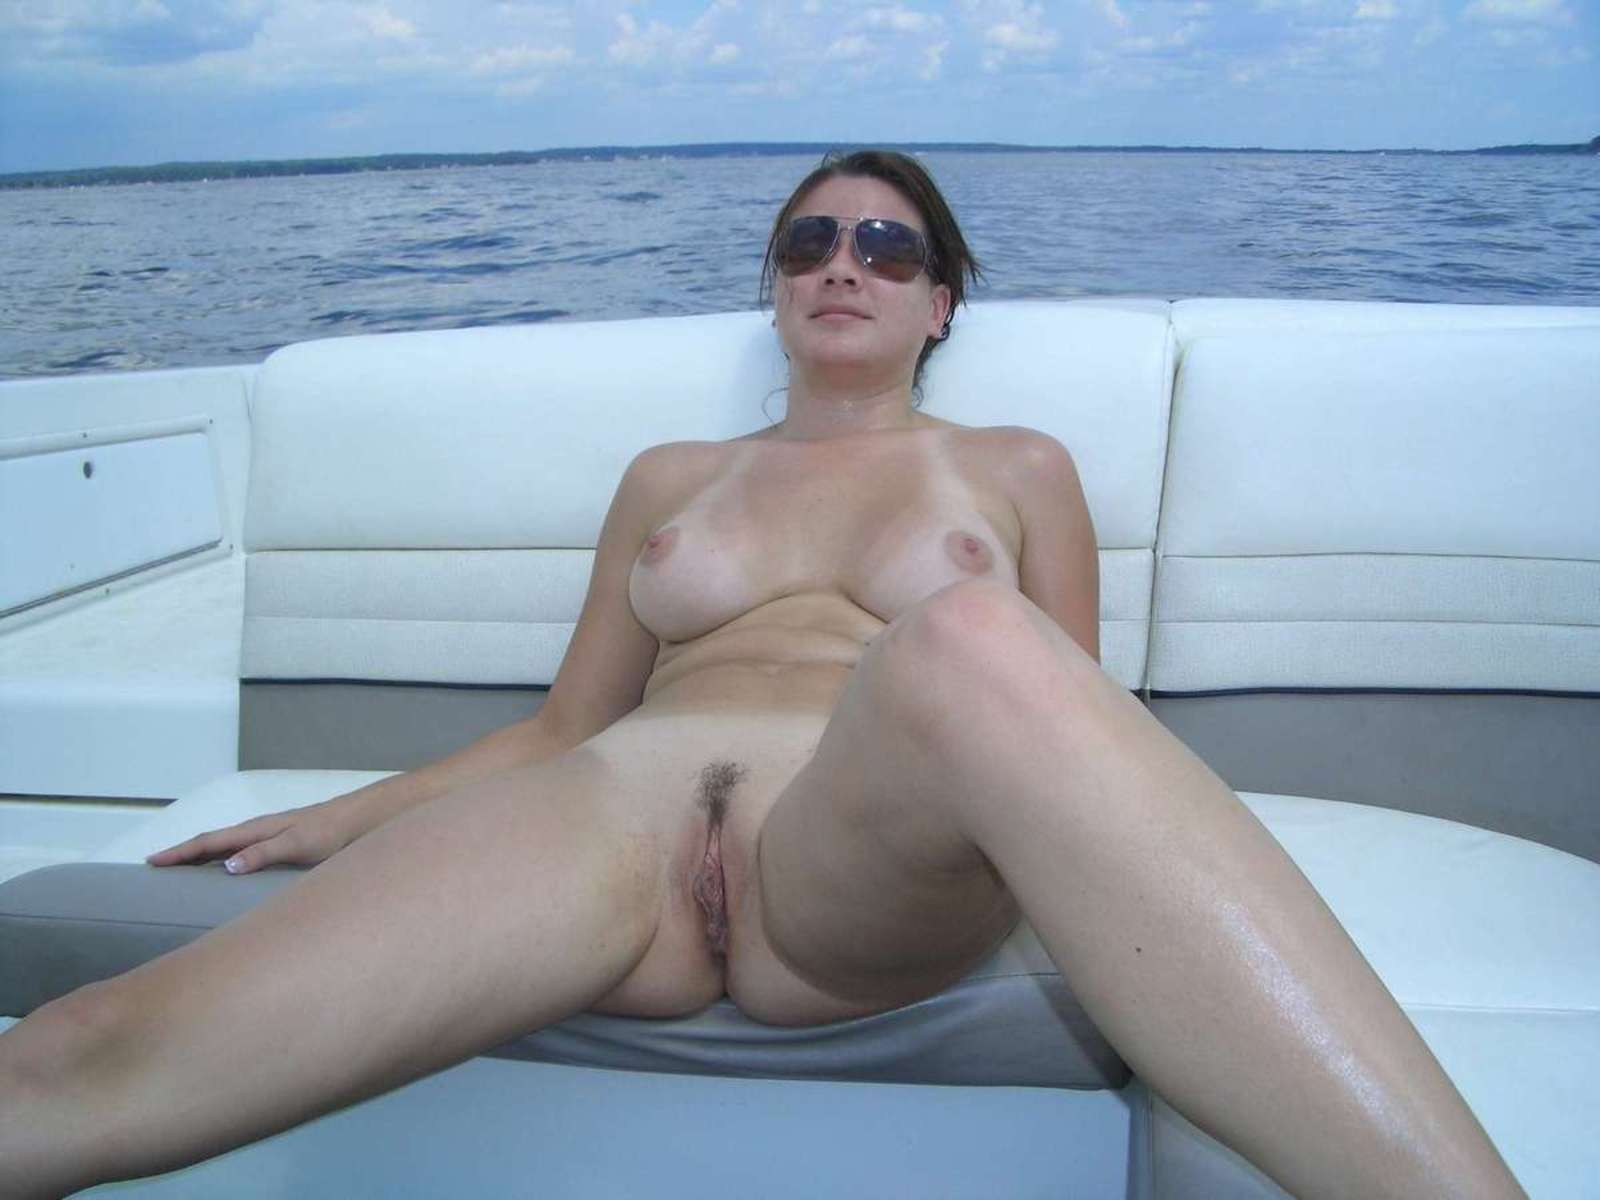 Remarkable, Hot body nude boat opinion